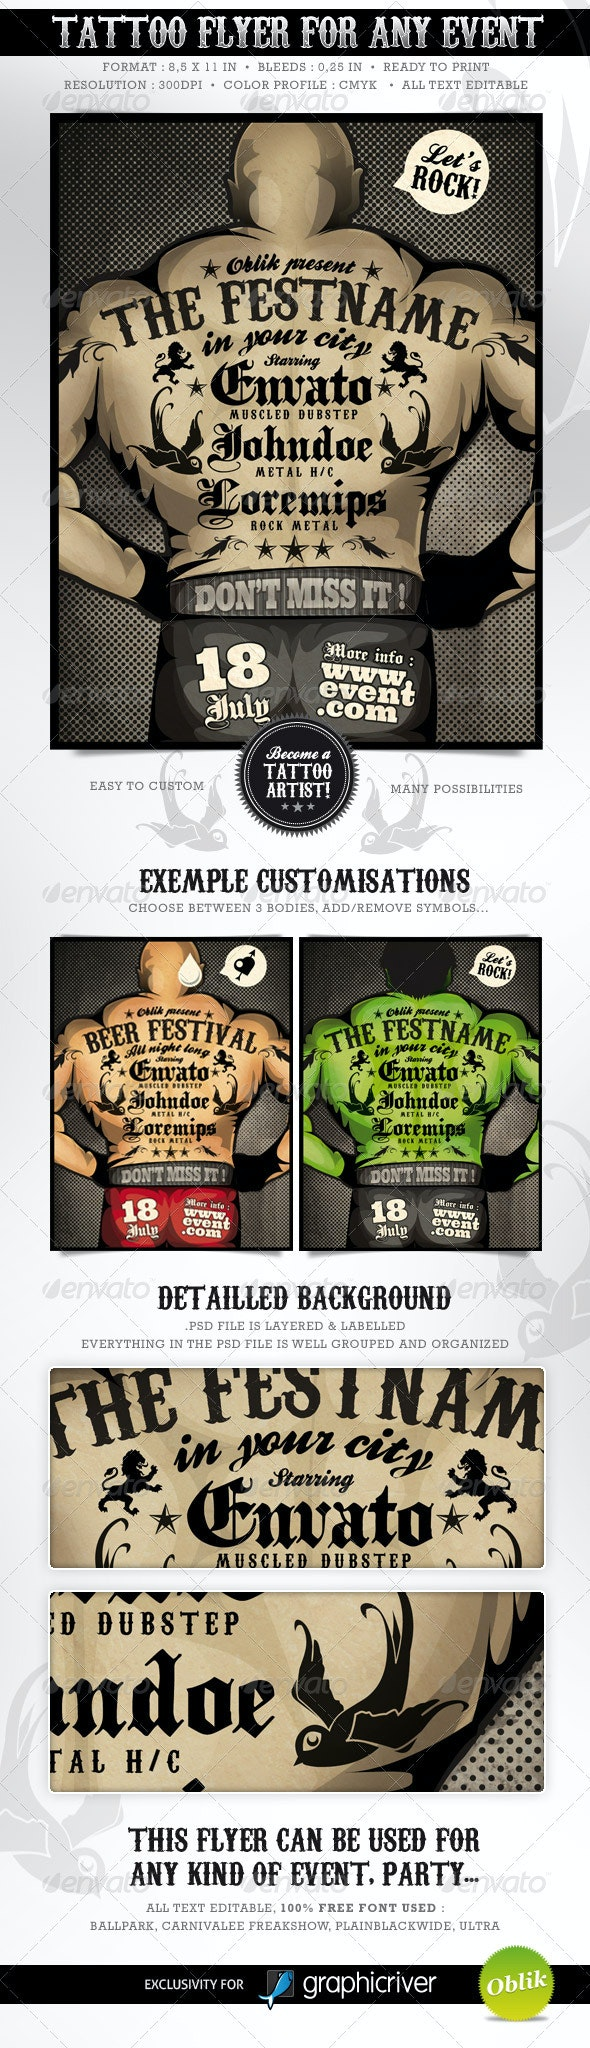 Tattoo Flyer - Become a tattoo artist ! - Miscellaneous Events